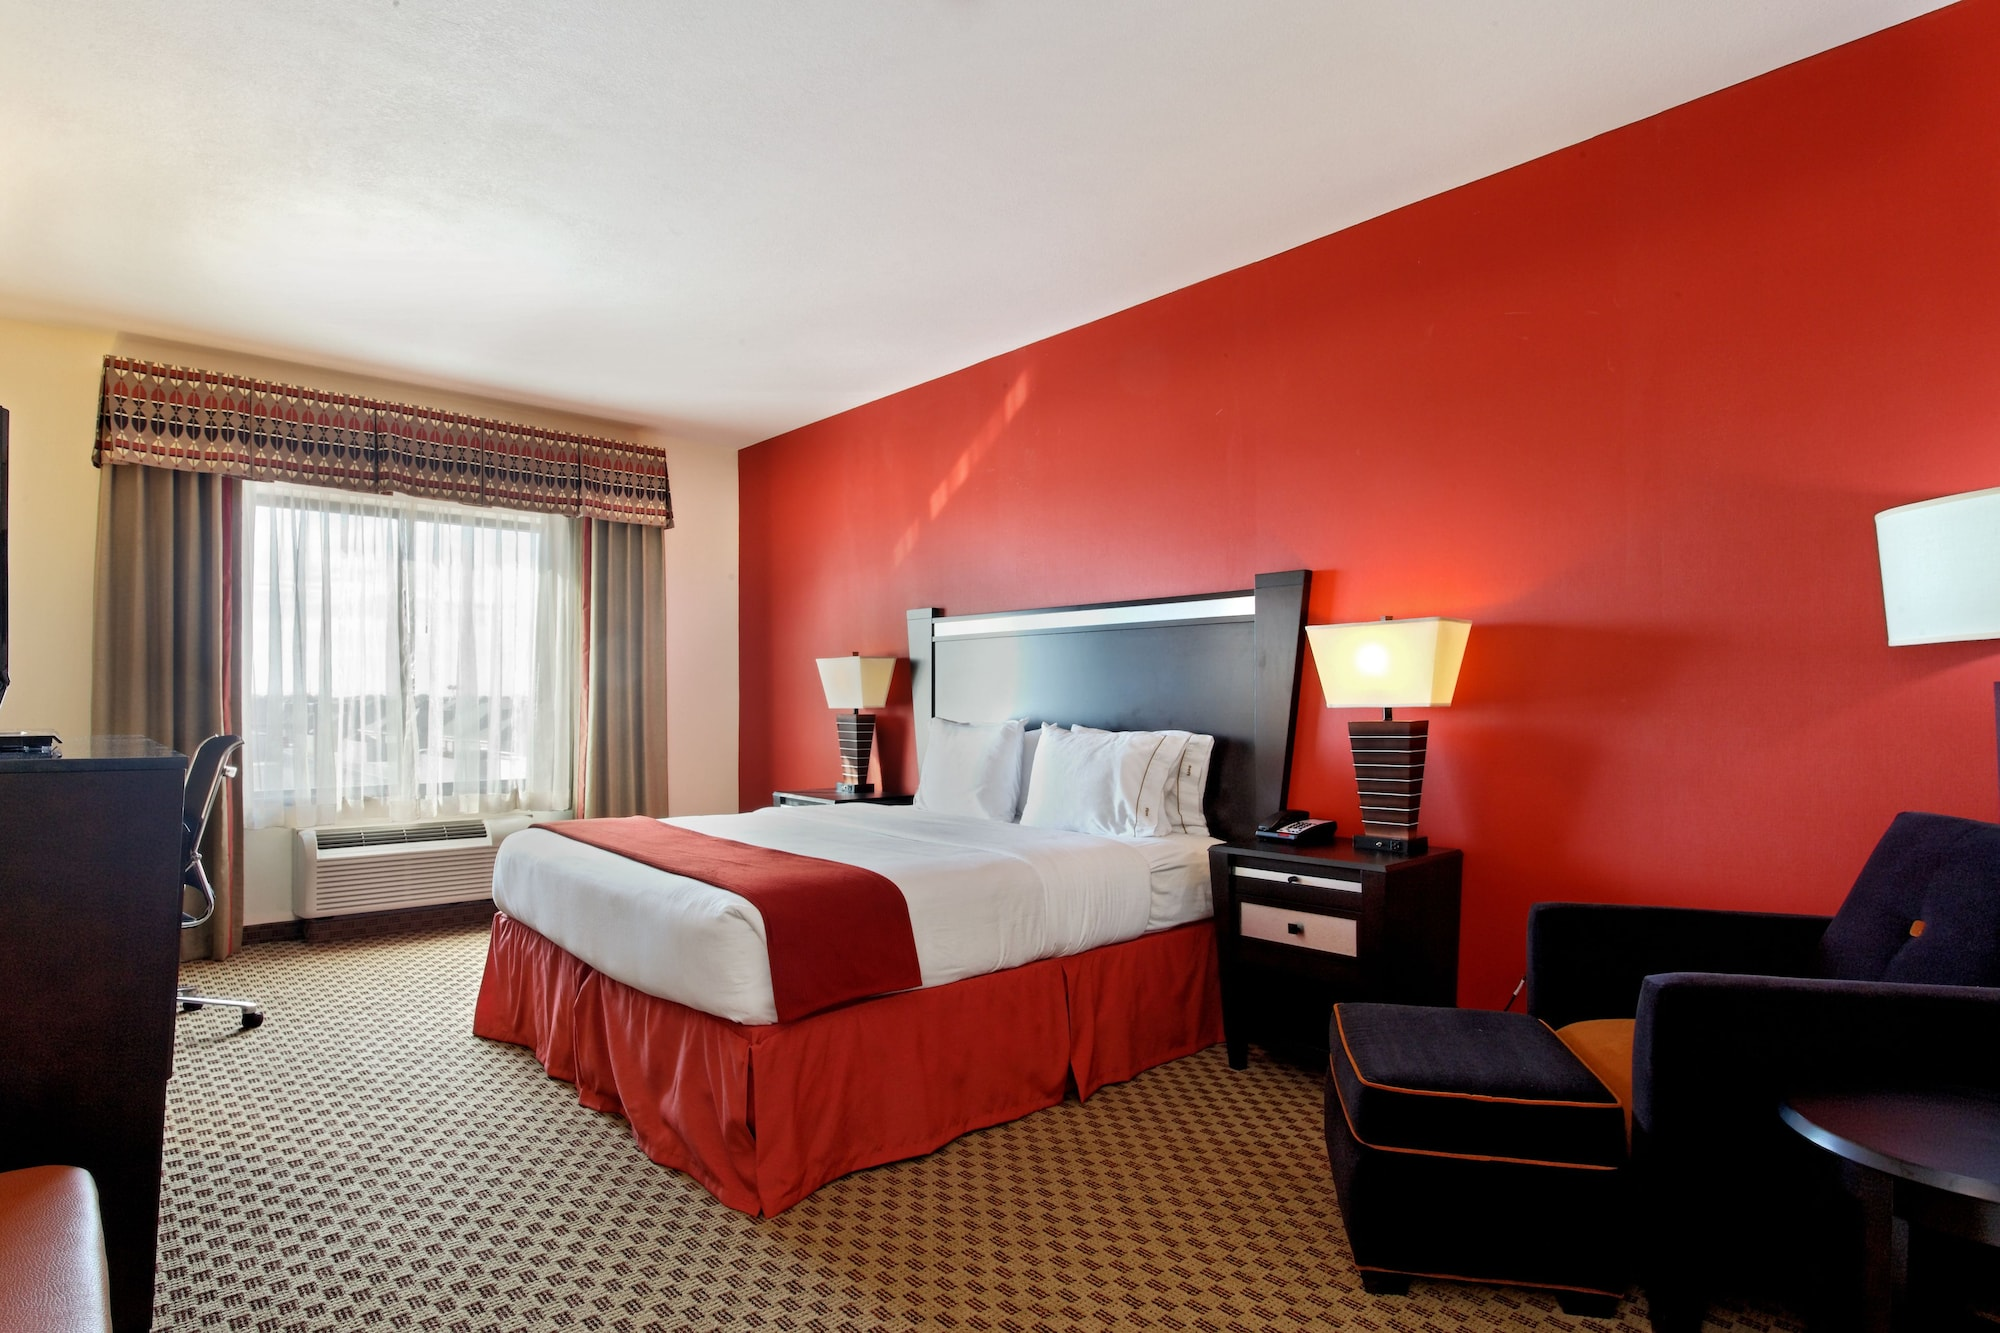 Holiday Inn Express Hotel & Suites Odessa, Ector